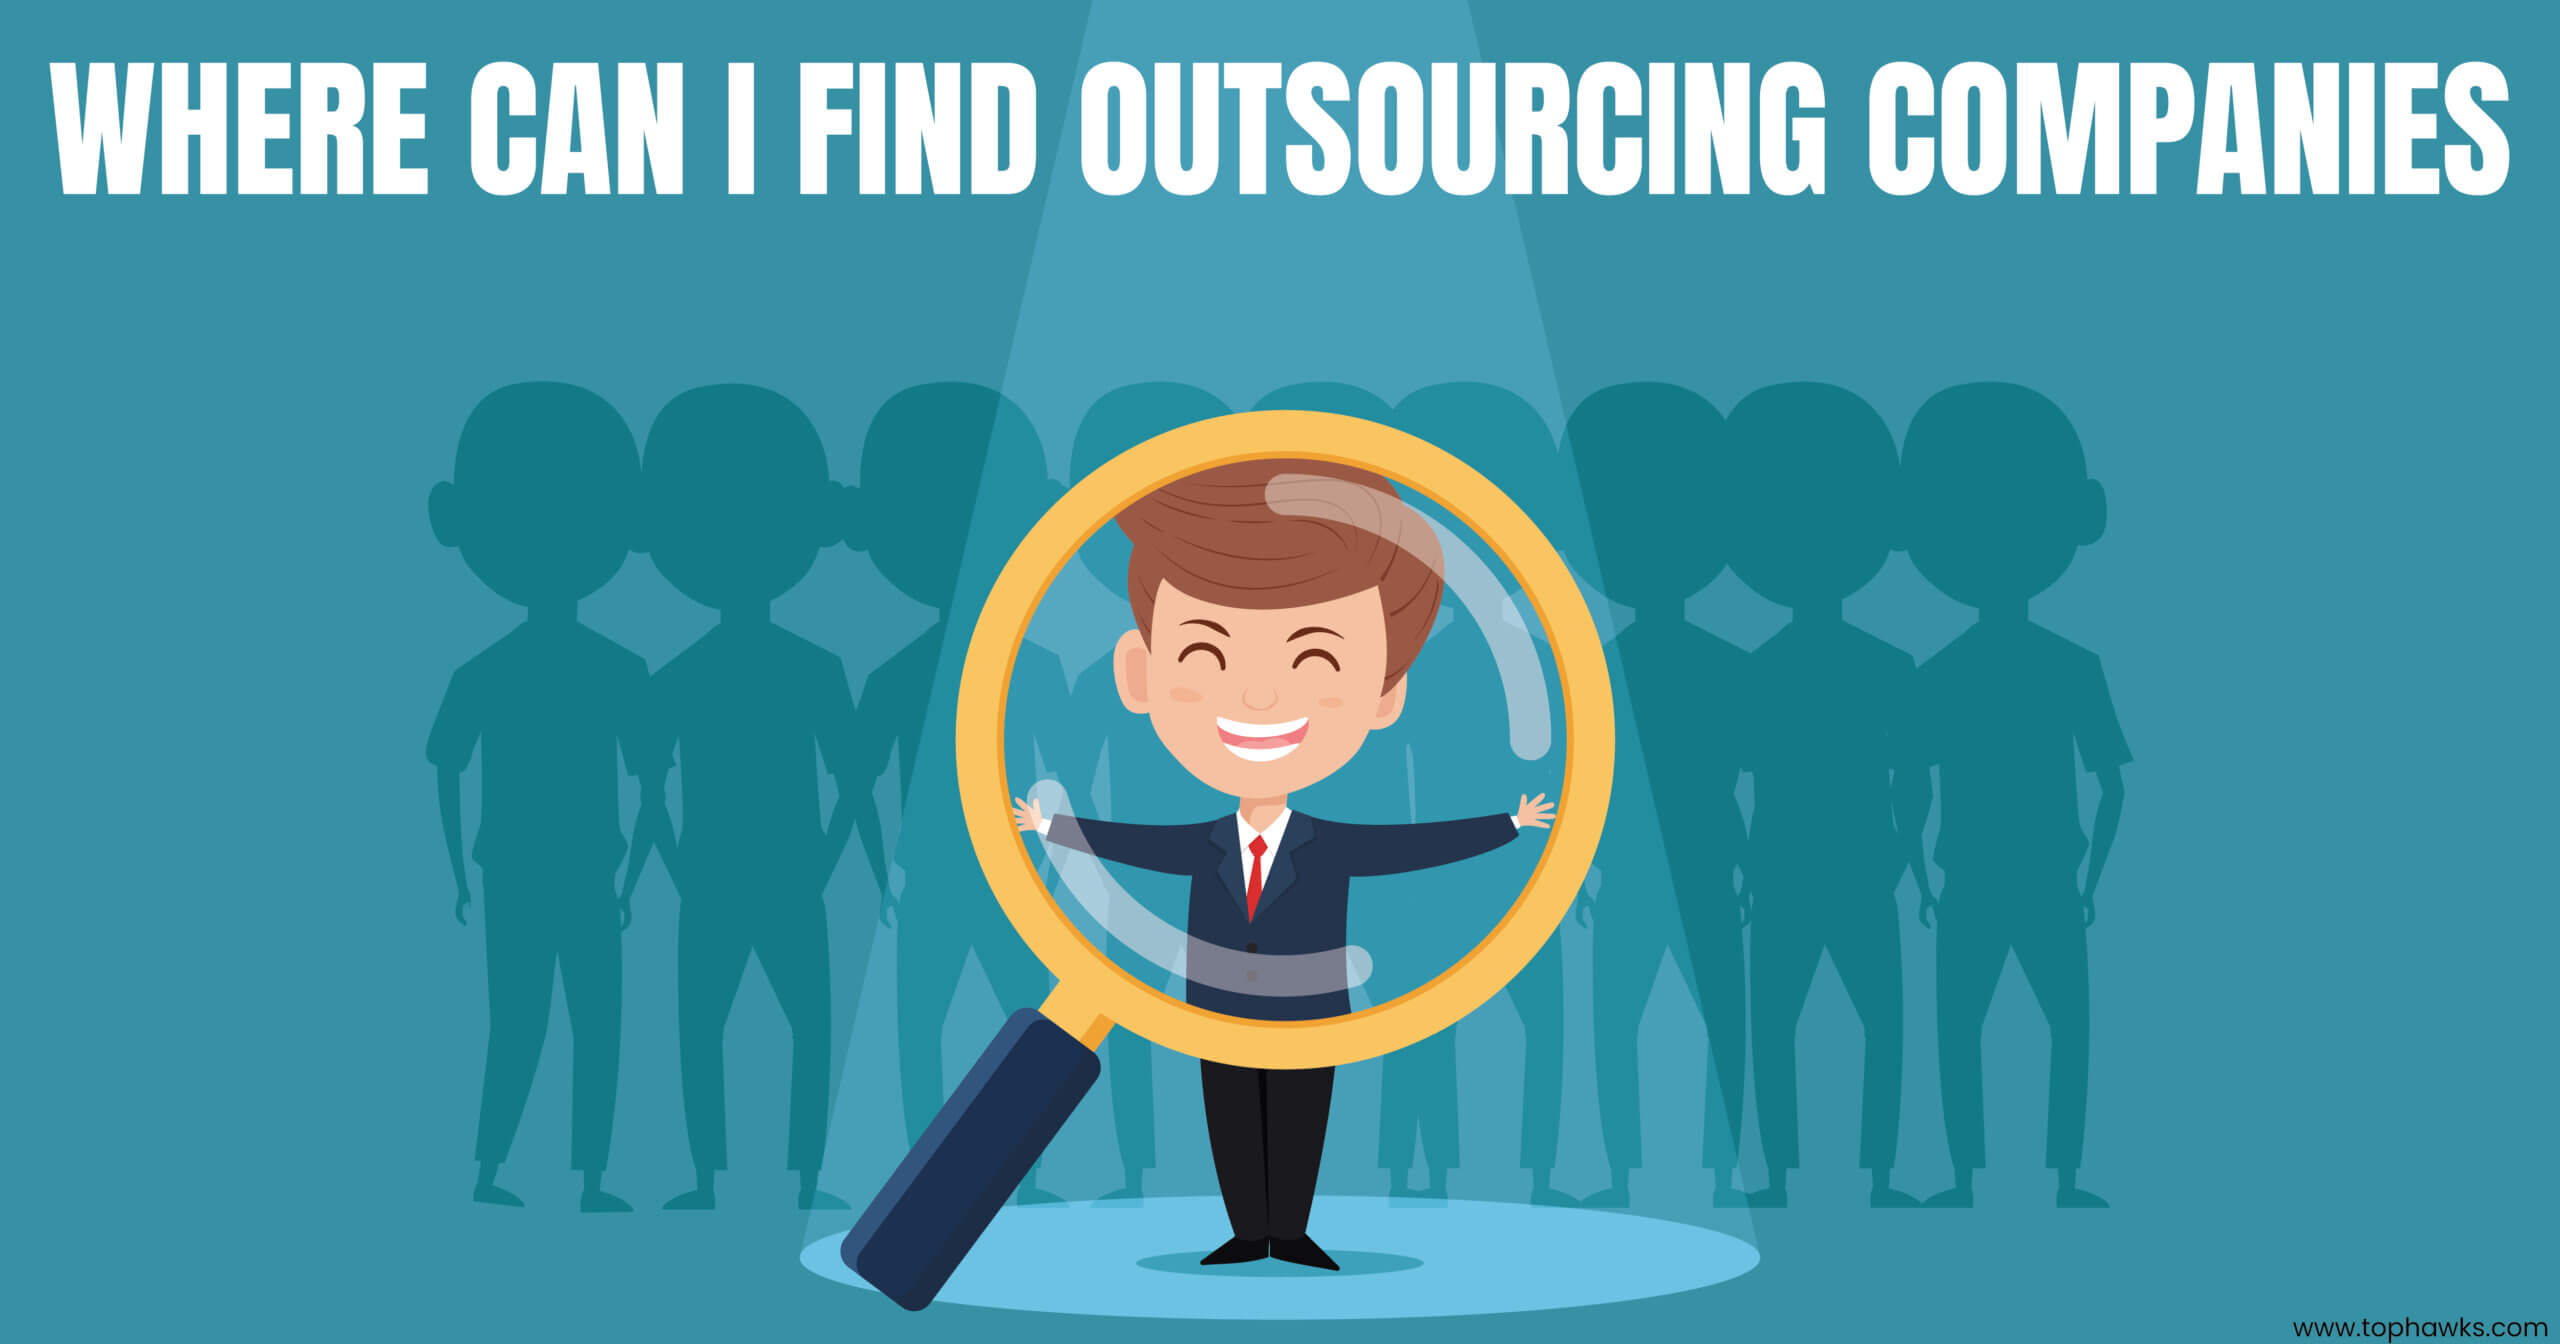 Where can I find outsourcing companies?